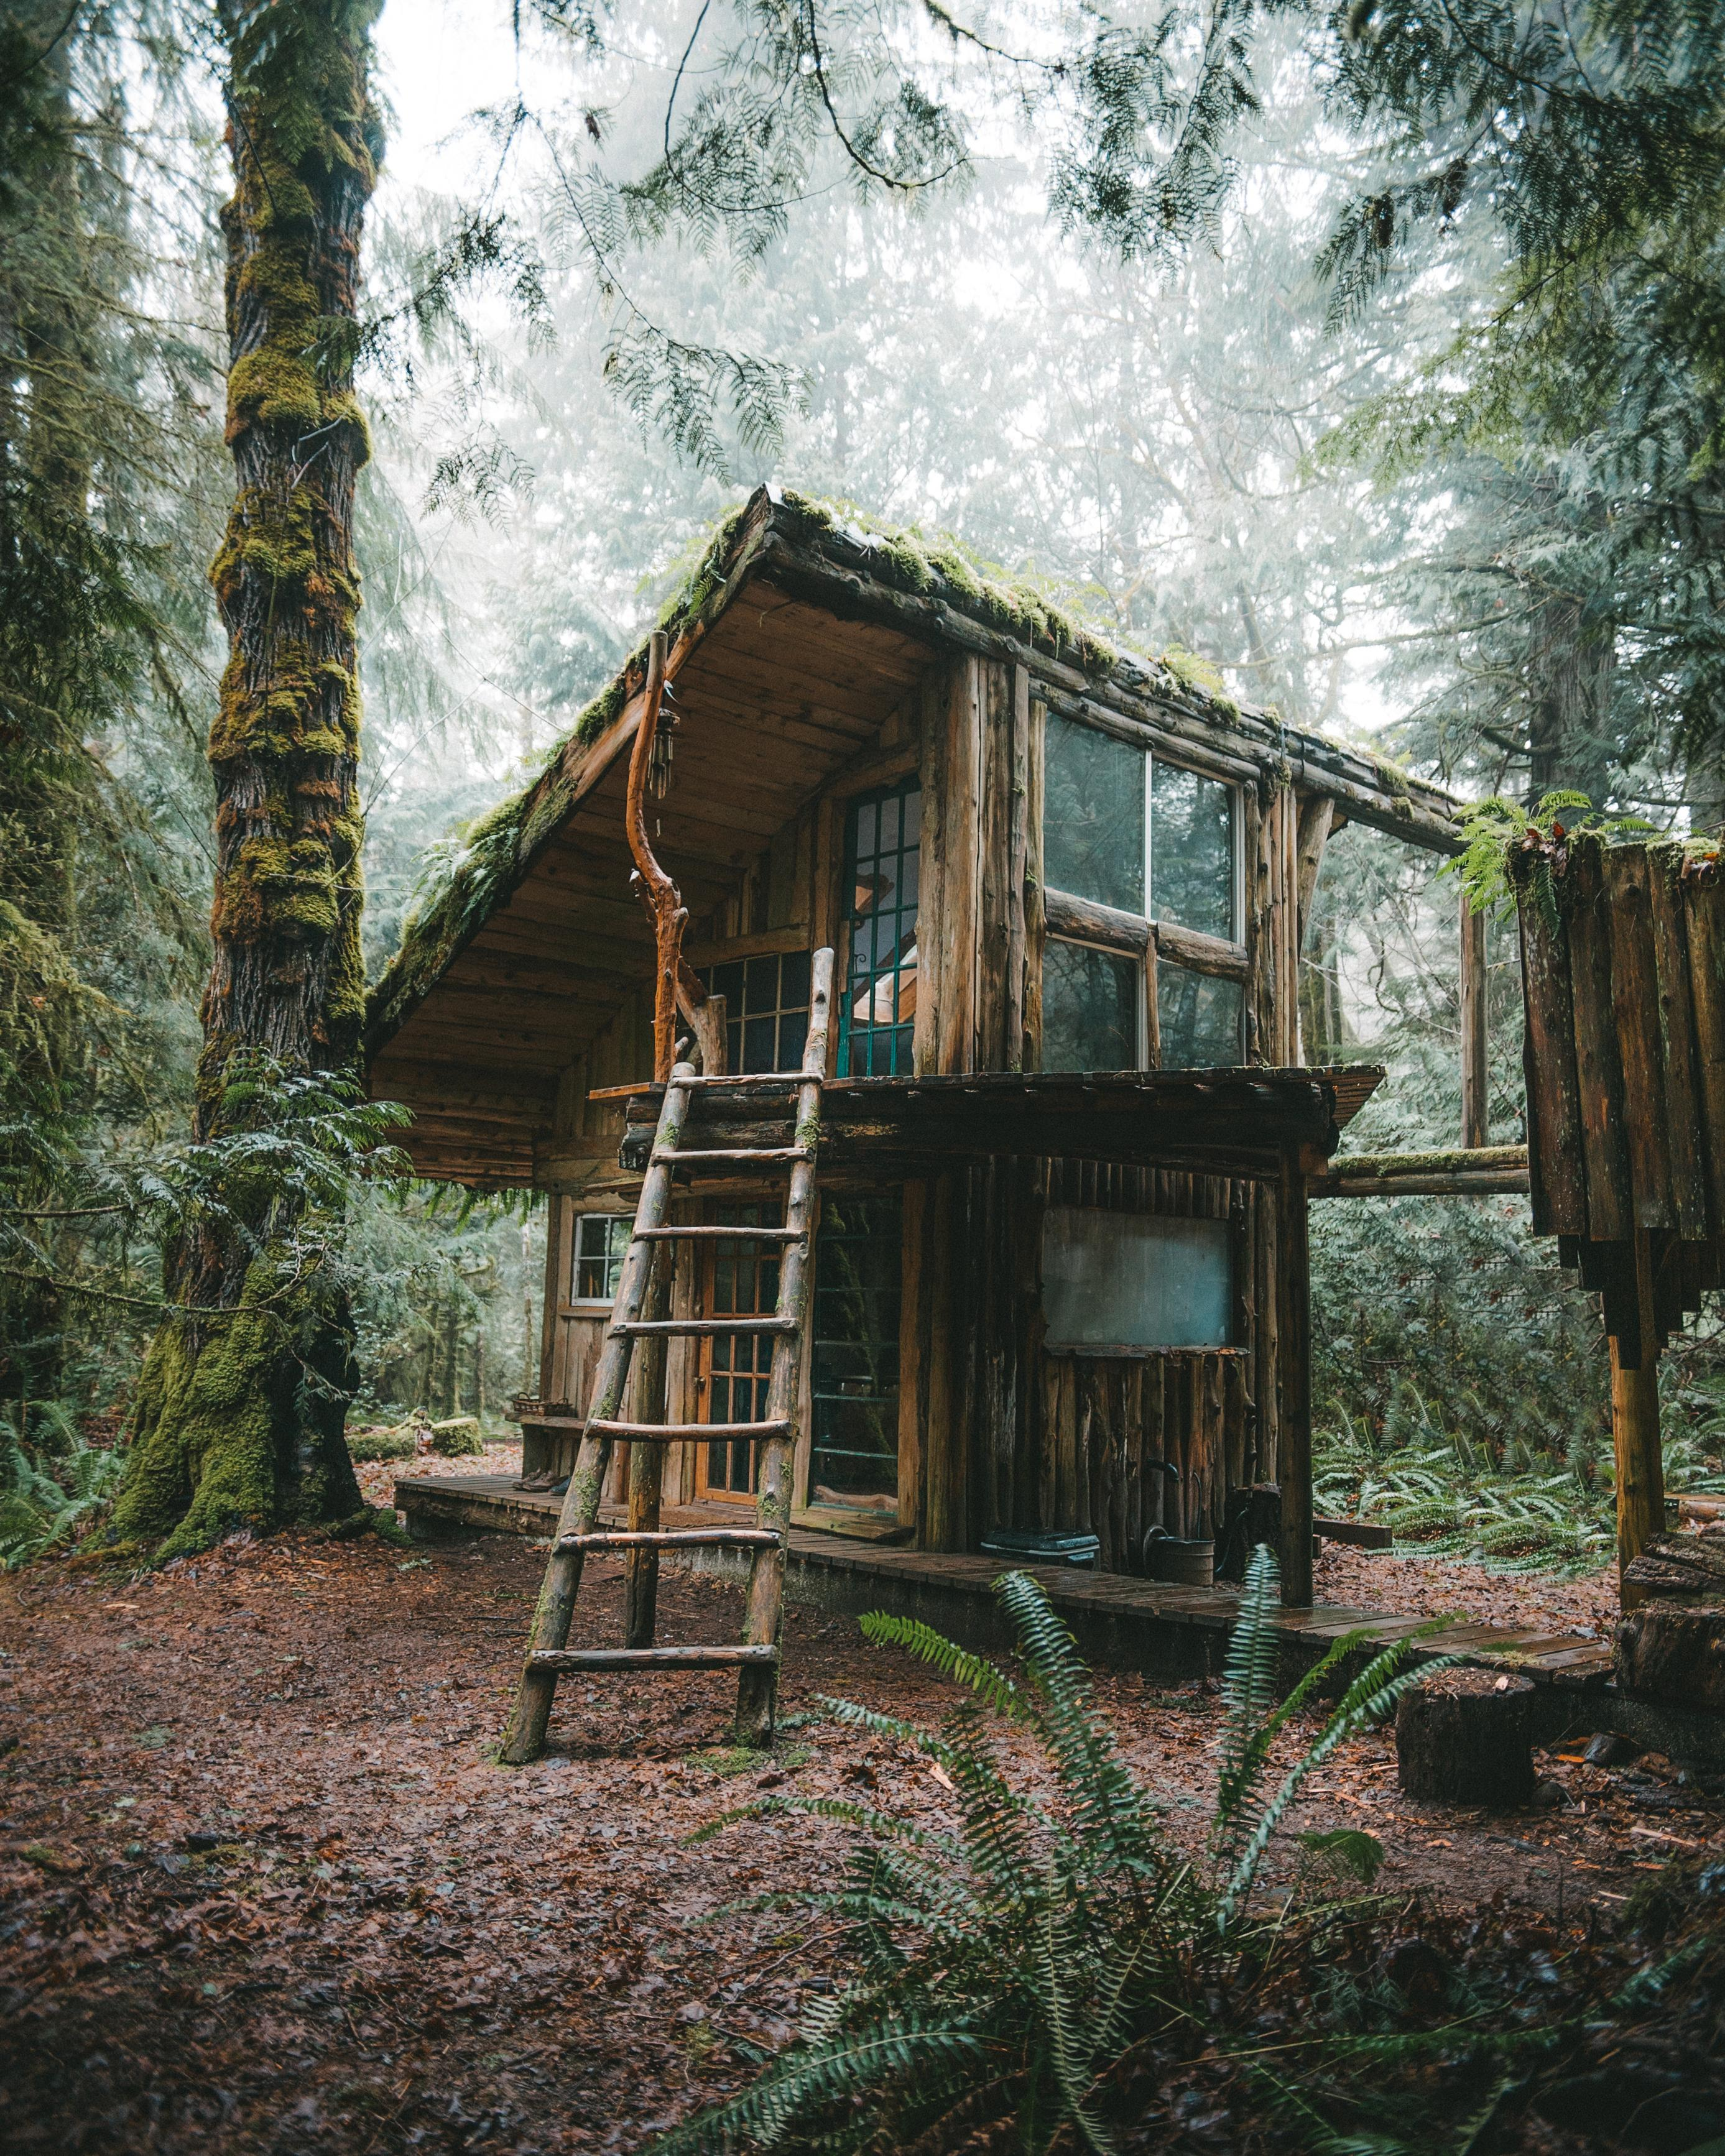 The Perfect Fairytale Cabin Located Just Outside Of Olympia Wa Oc The Best Designs And Art From The Internet